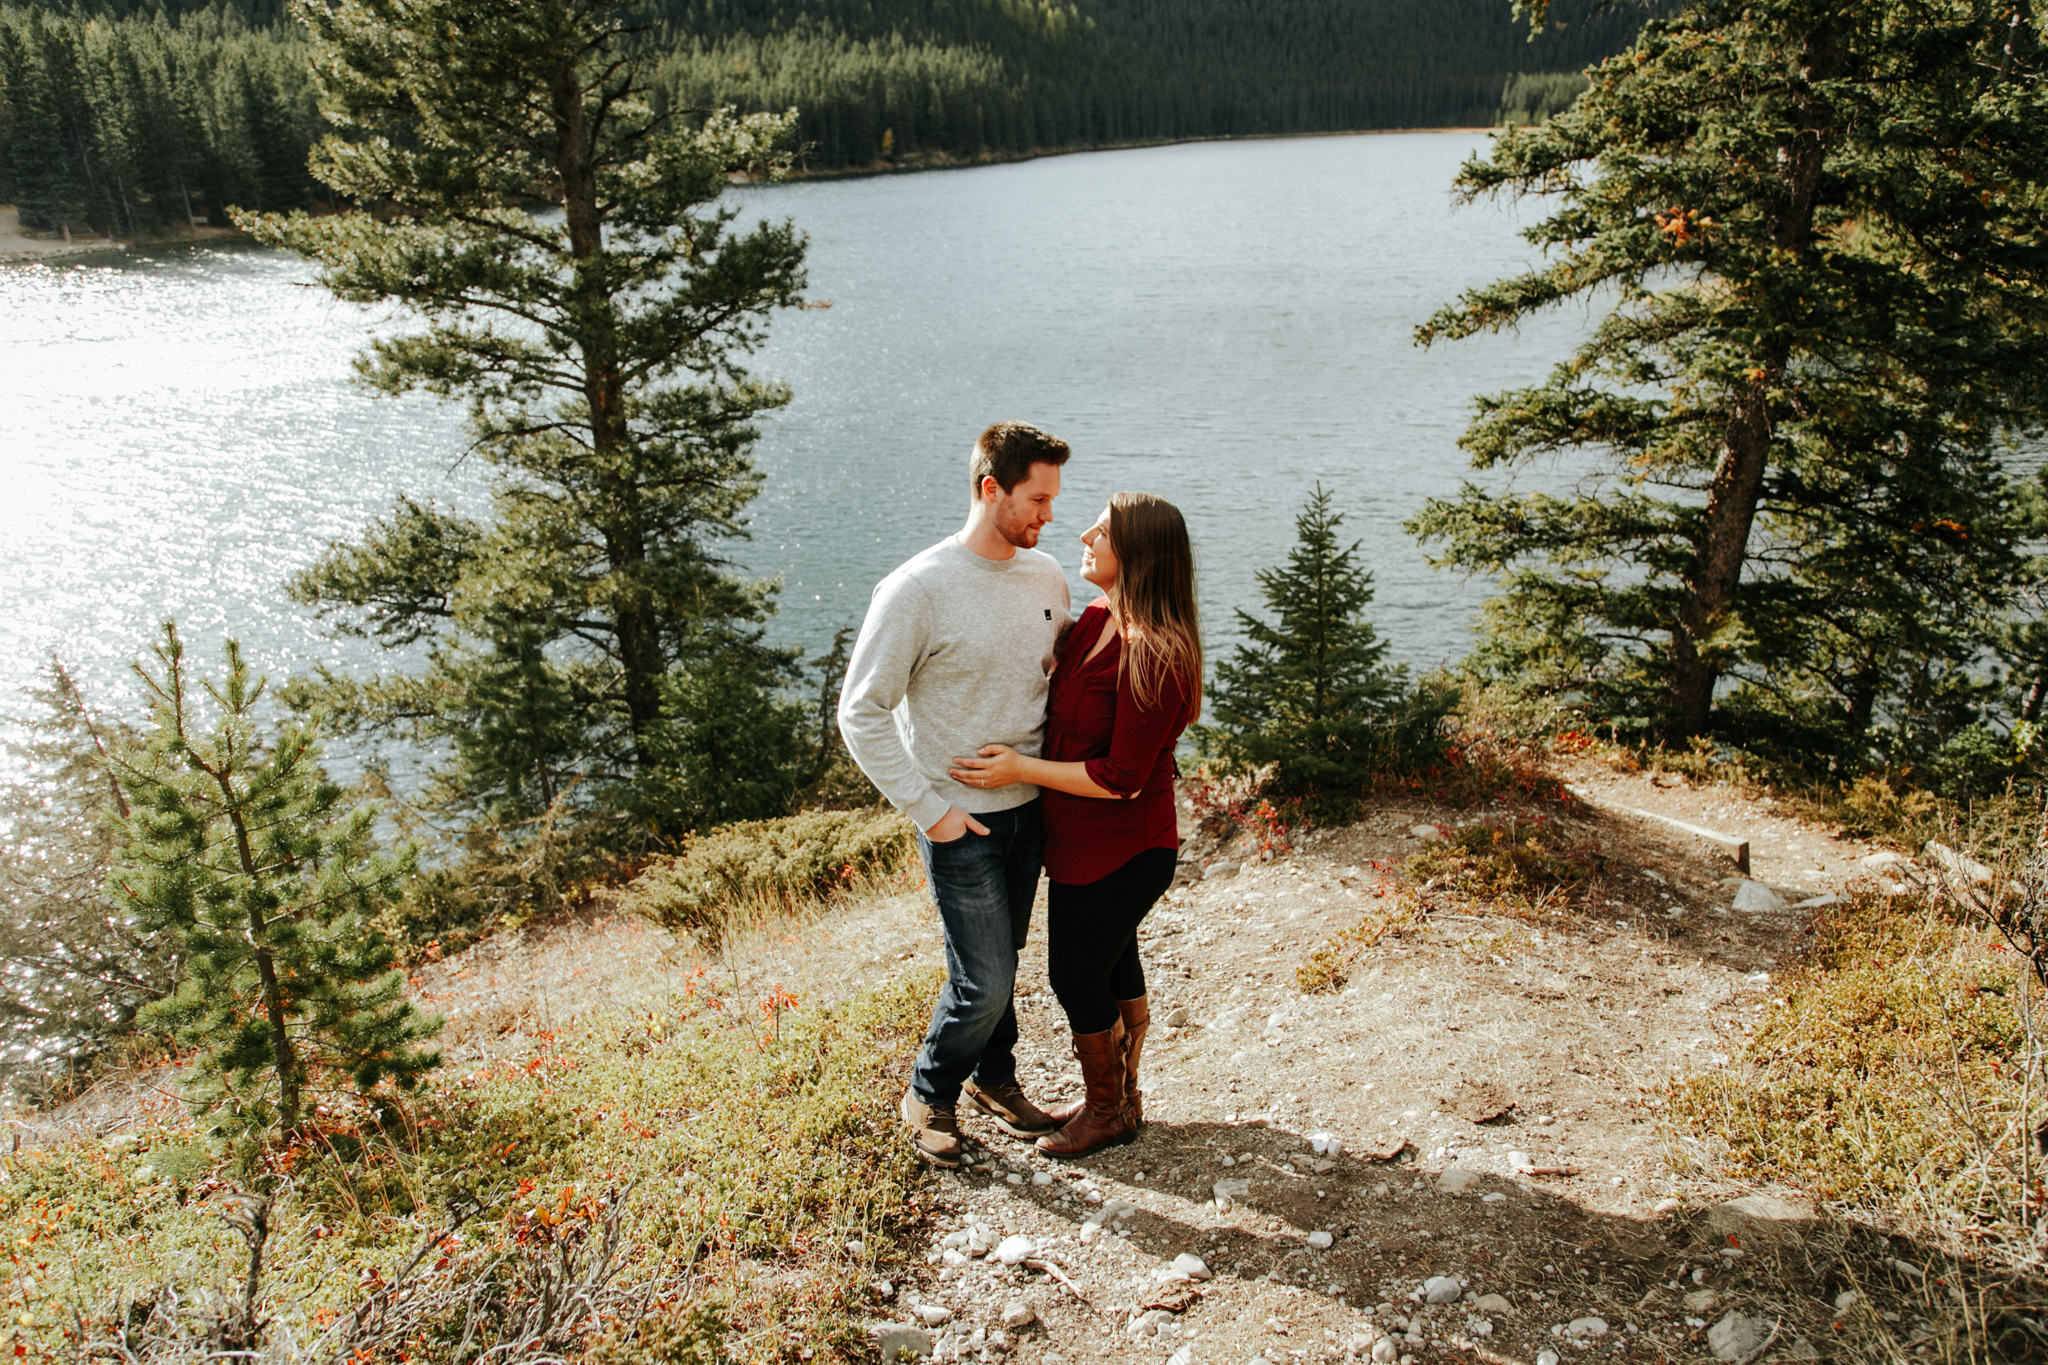 lethbridge-photographer-love-and-be-loved-photography-crowsnest-pass-engagement-andi-philip-picture-image-photo--7.jpg